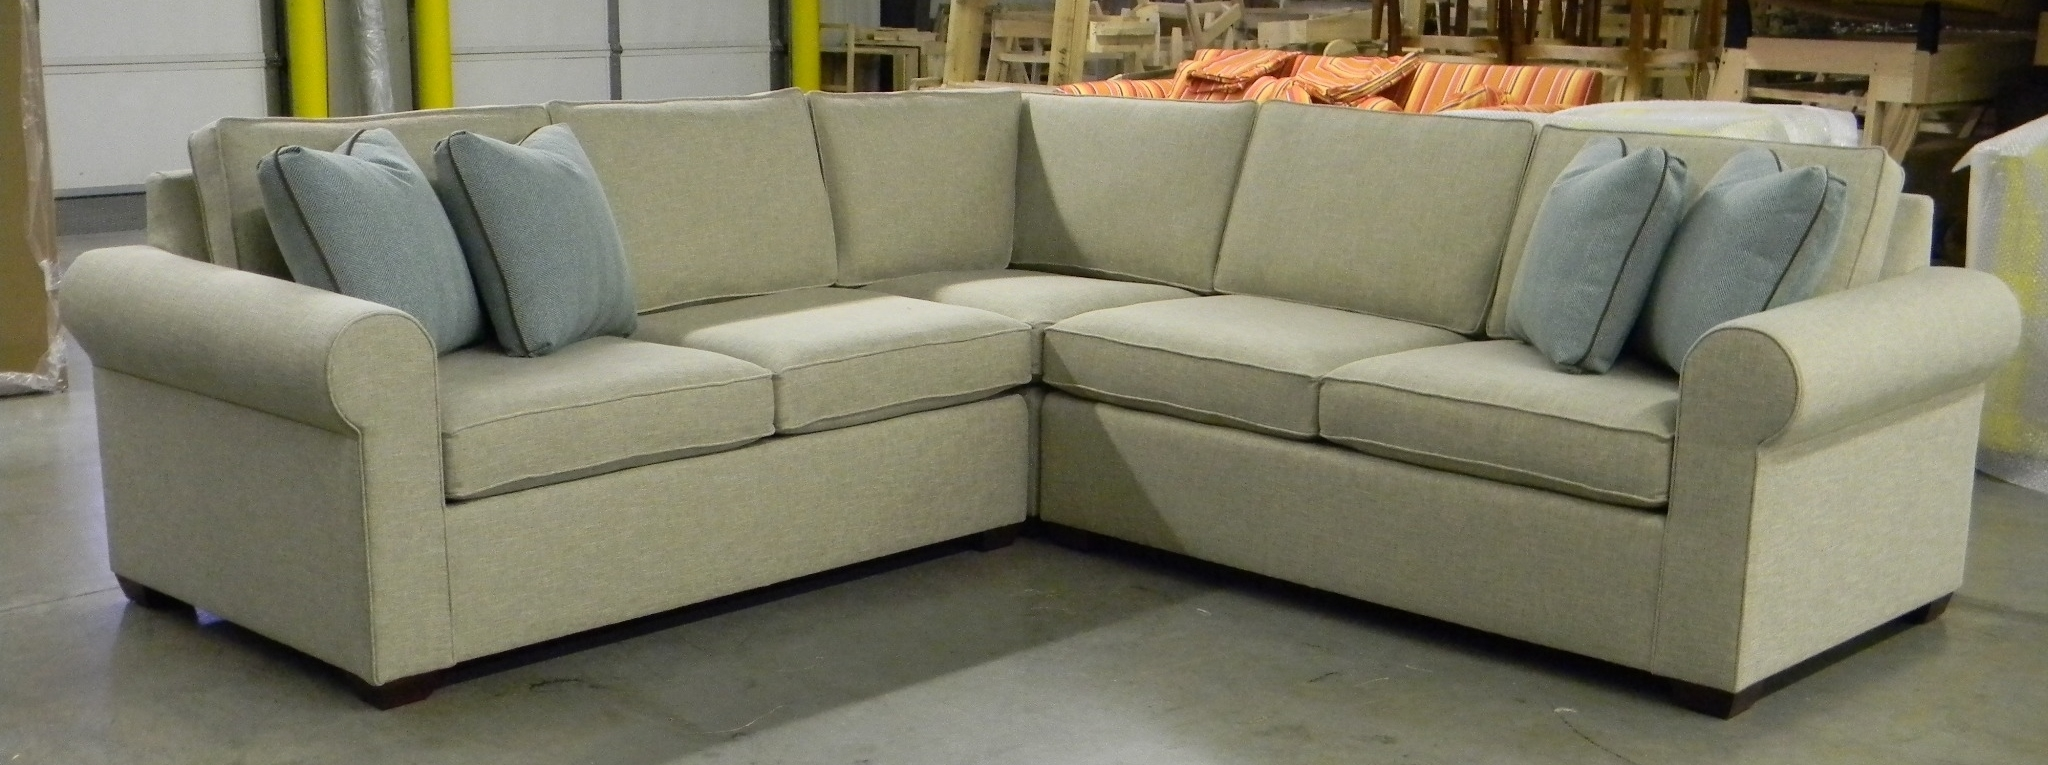 Featured Image of Made In North Carolina Sectional Sofas